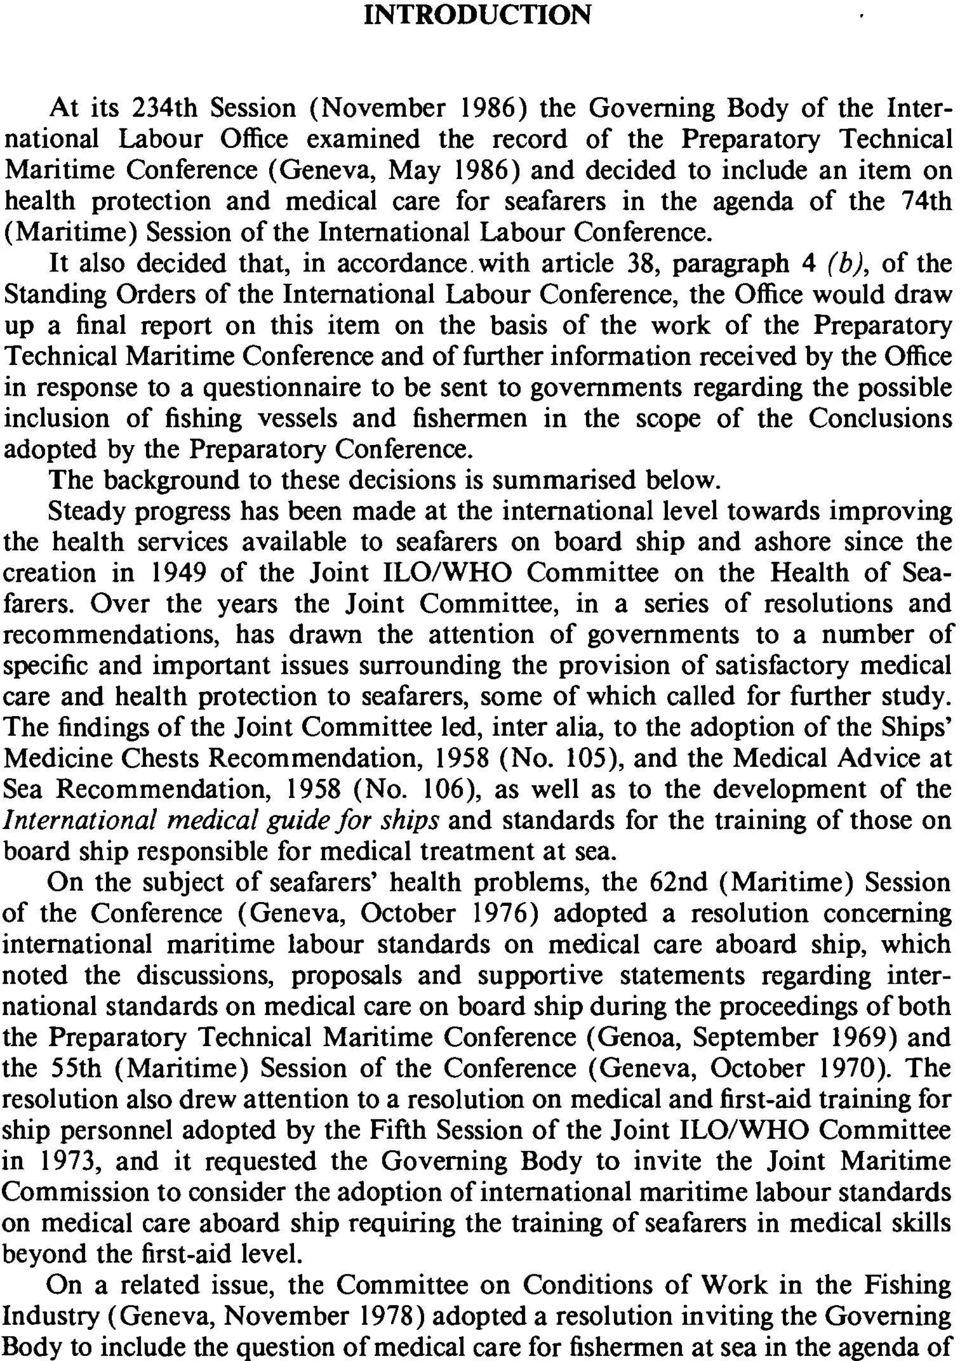 It also decided that, in accordance with article 38, paragraph 4 (b), of the Standing Orders of the International Labour Conference, the Office would draw up a final report on this item on the basis